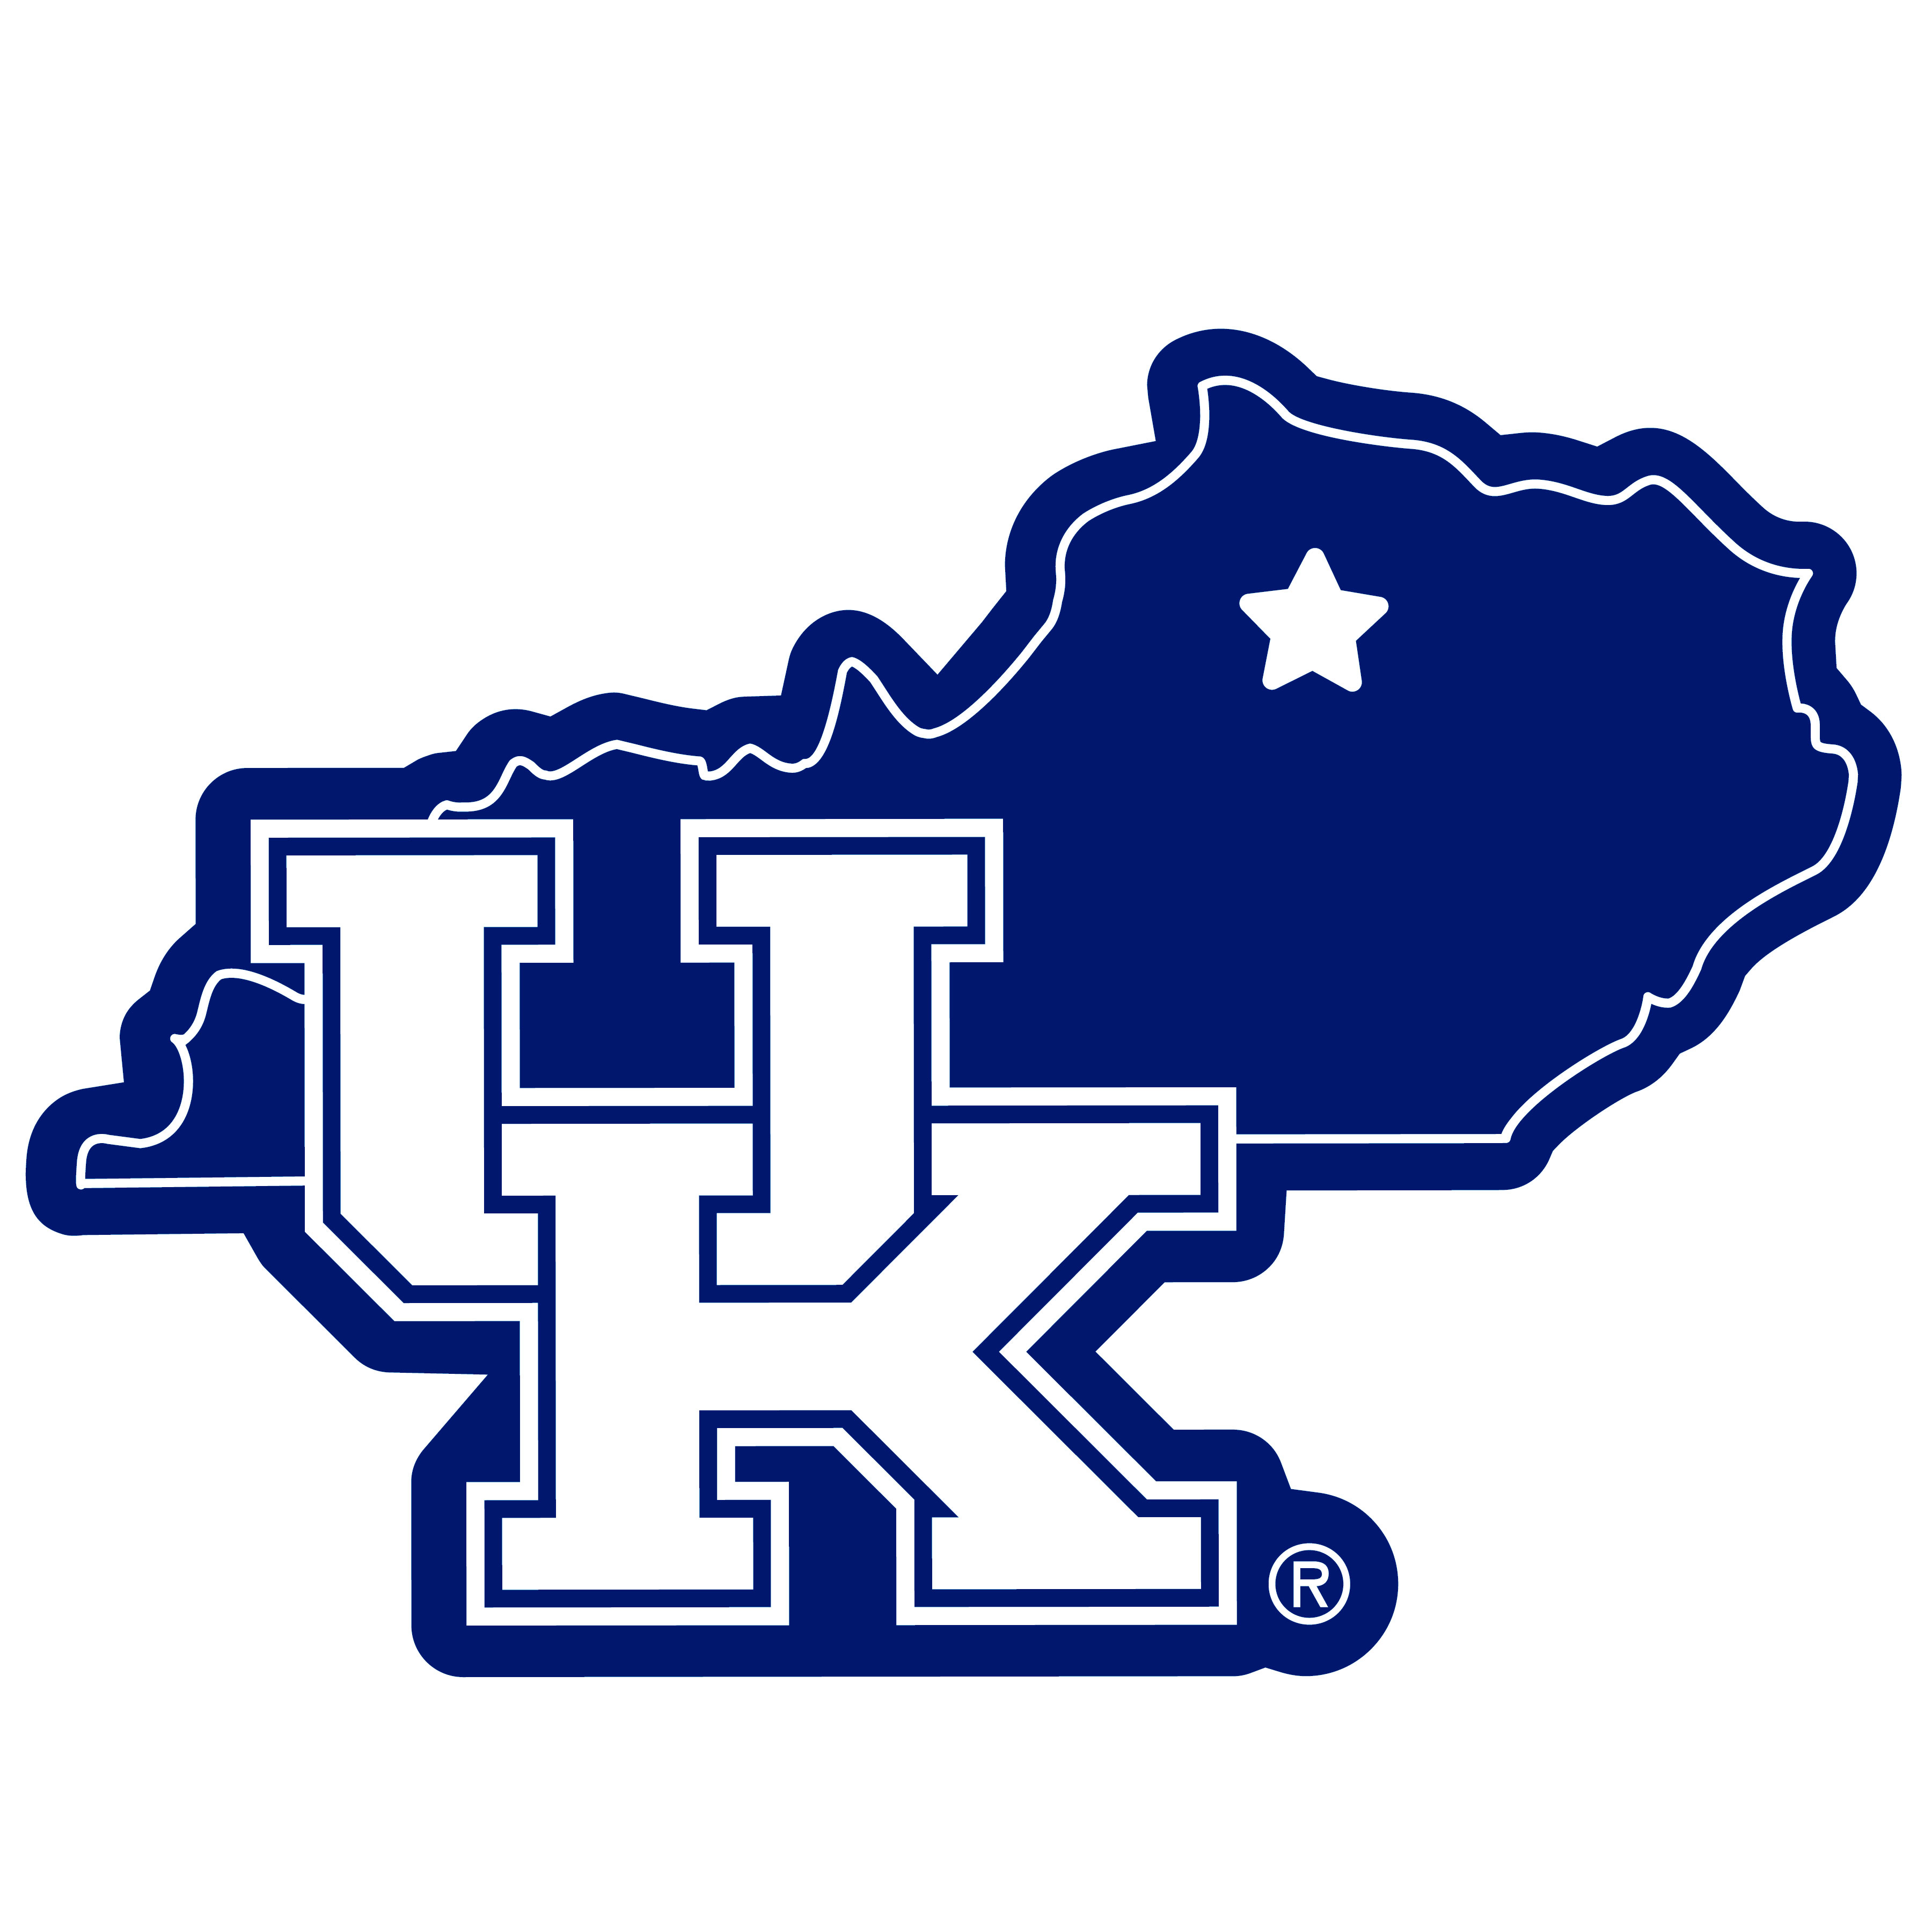 Kentucky Wildcats Home State 11 Inch Magnet - Whether you are caravaning to the game or having a tailgate party make sure you car is wearing its fan gear with our extra large, 11 inch Kentucky Wildcats home state magnets. These striking magnets can be easily placed on for game day and removed without he residue left by decals. The design features a bright state outline with the location of the team highlighted with a football and a large team logo.